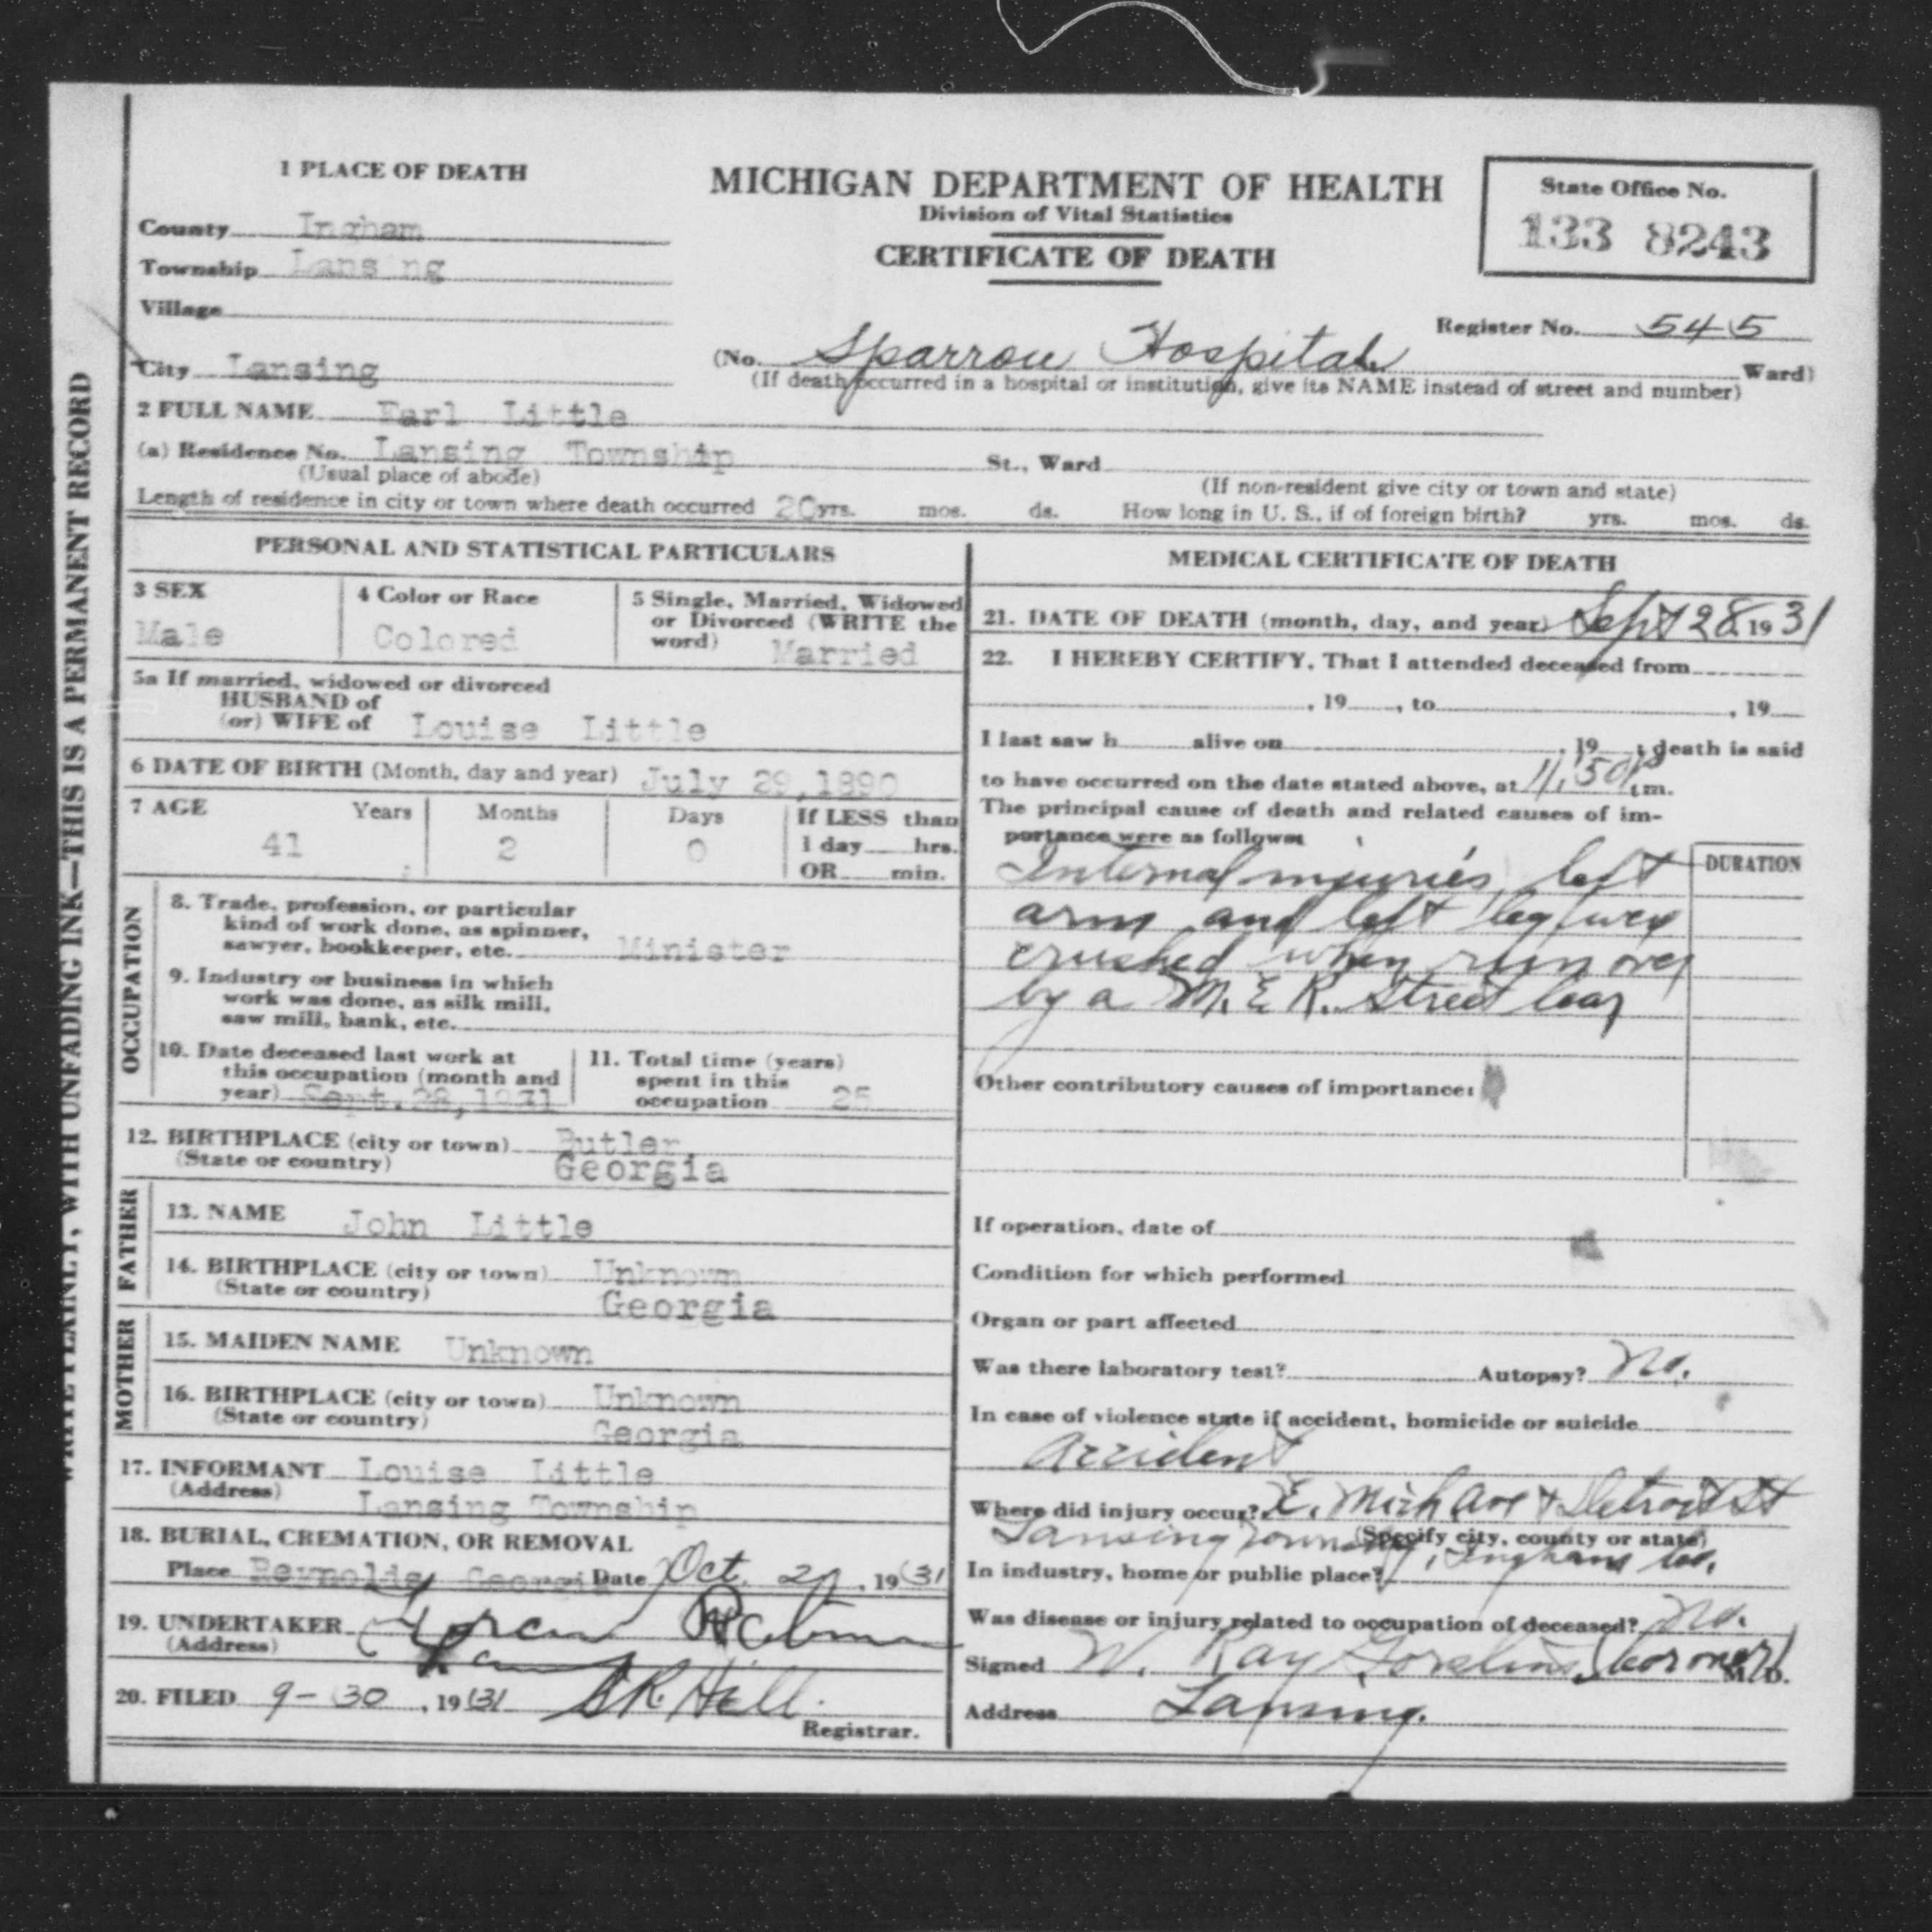 Earl littles death e michigan ave and detroit st malcolm x earl littles death certificate aiddatafo Choice Image